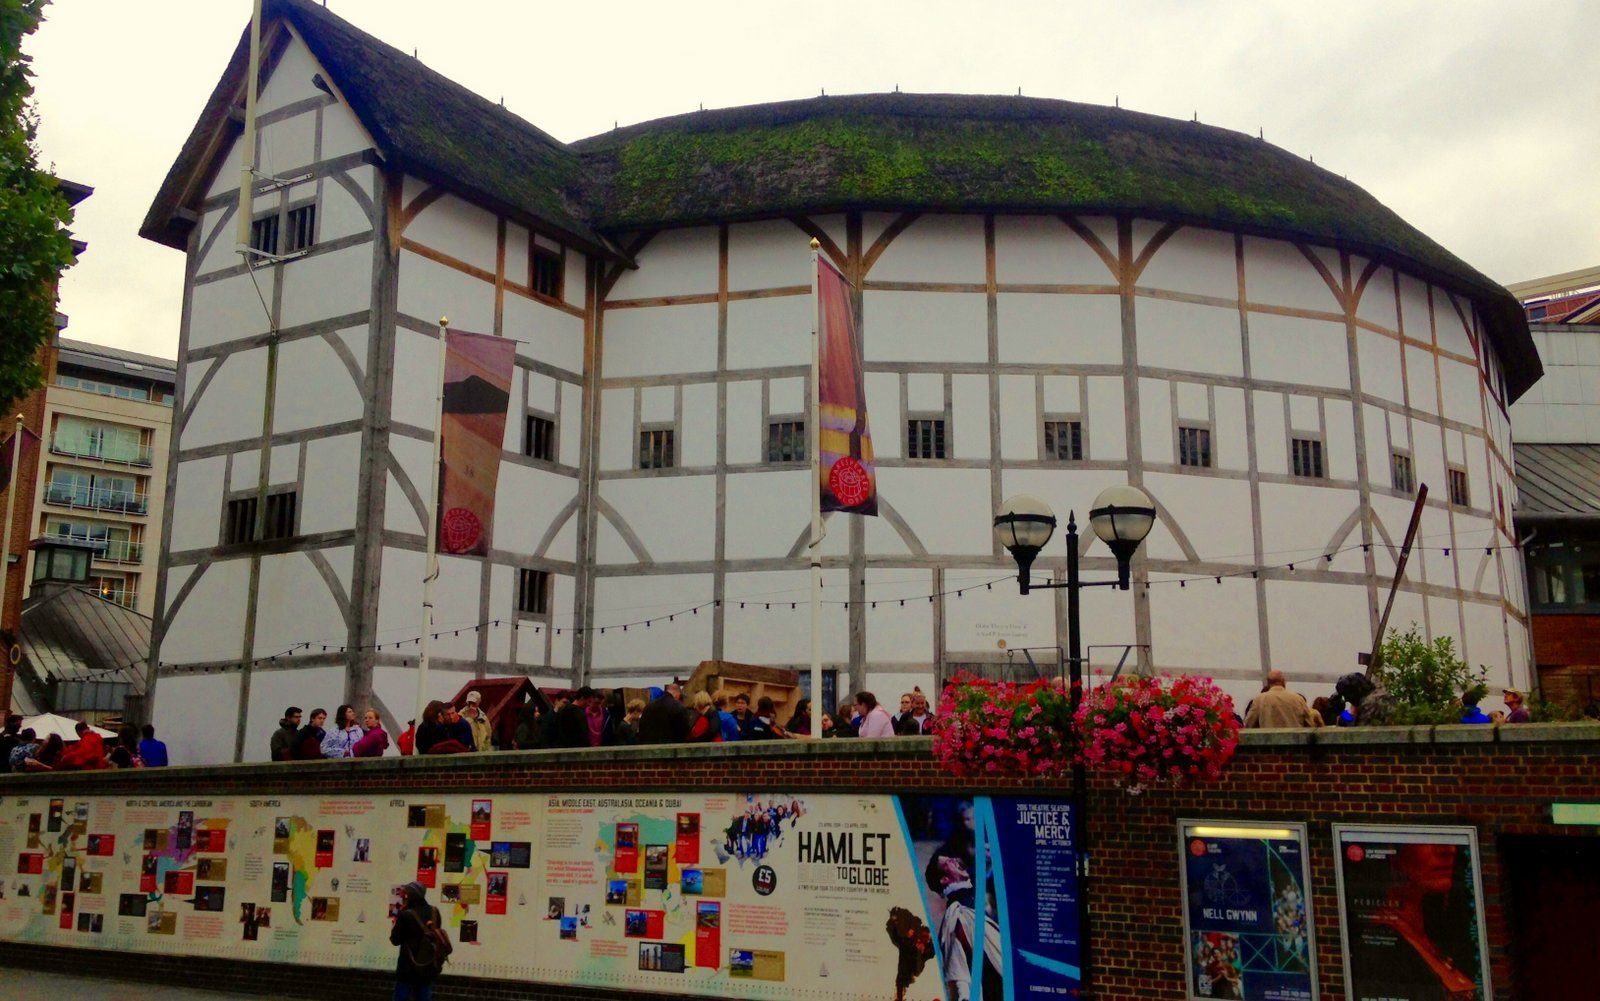 Just 'As You Like It' at Shakespeare's Globe Theatre